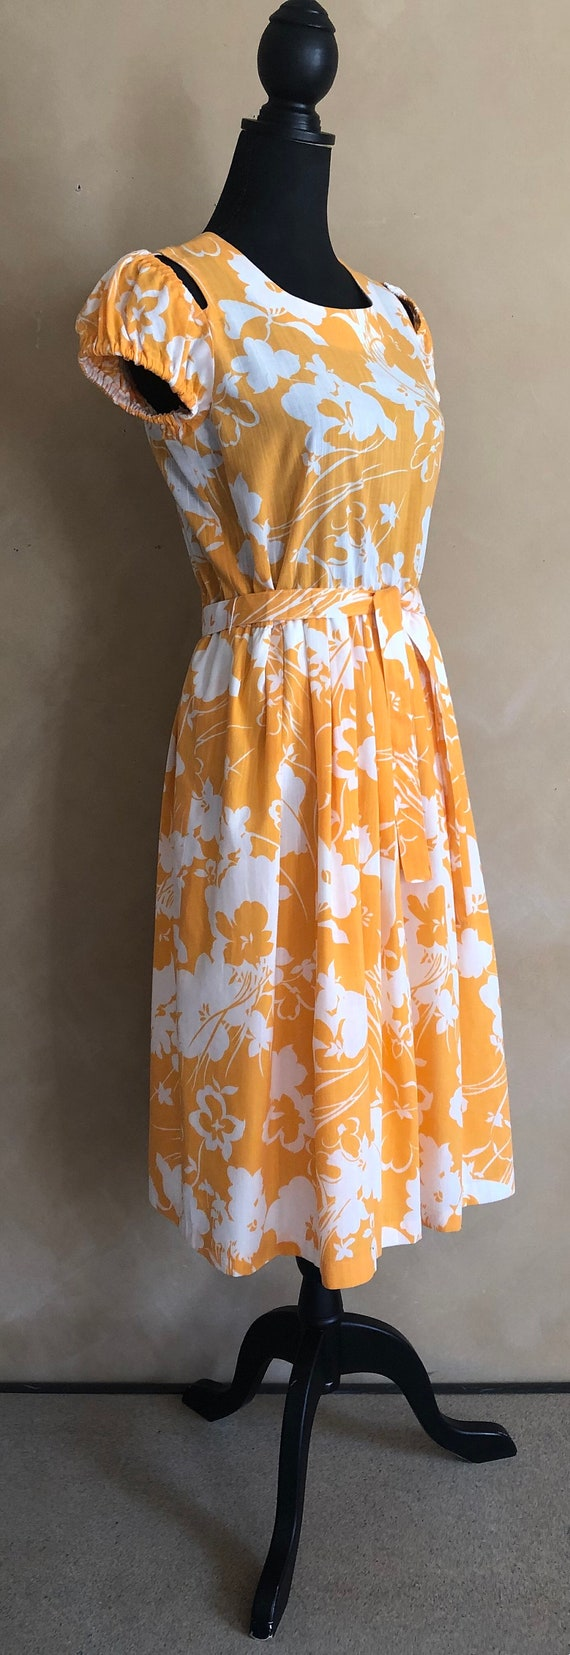 Vintage 70's Marigold  Yellow Floral Dress - image 2